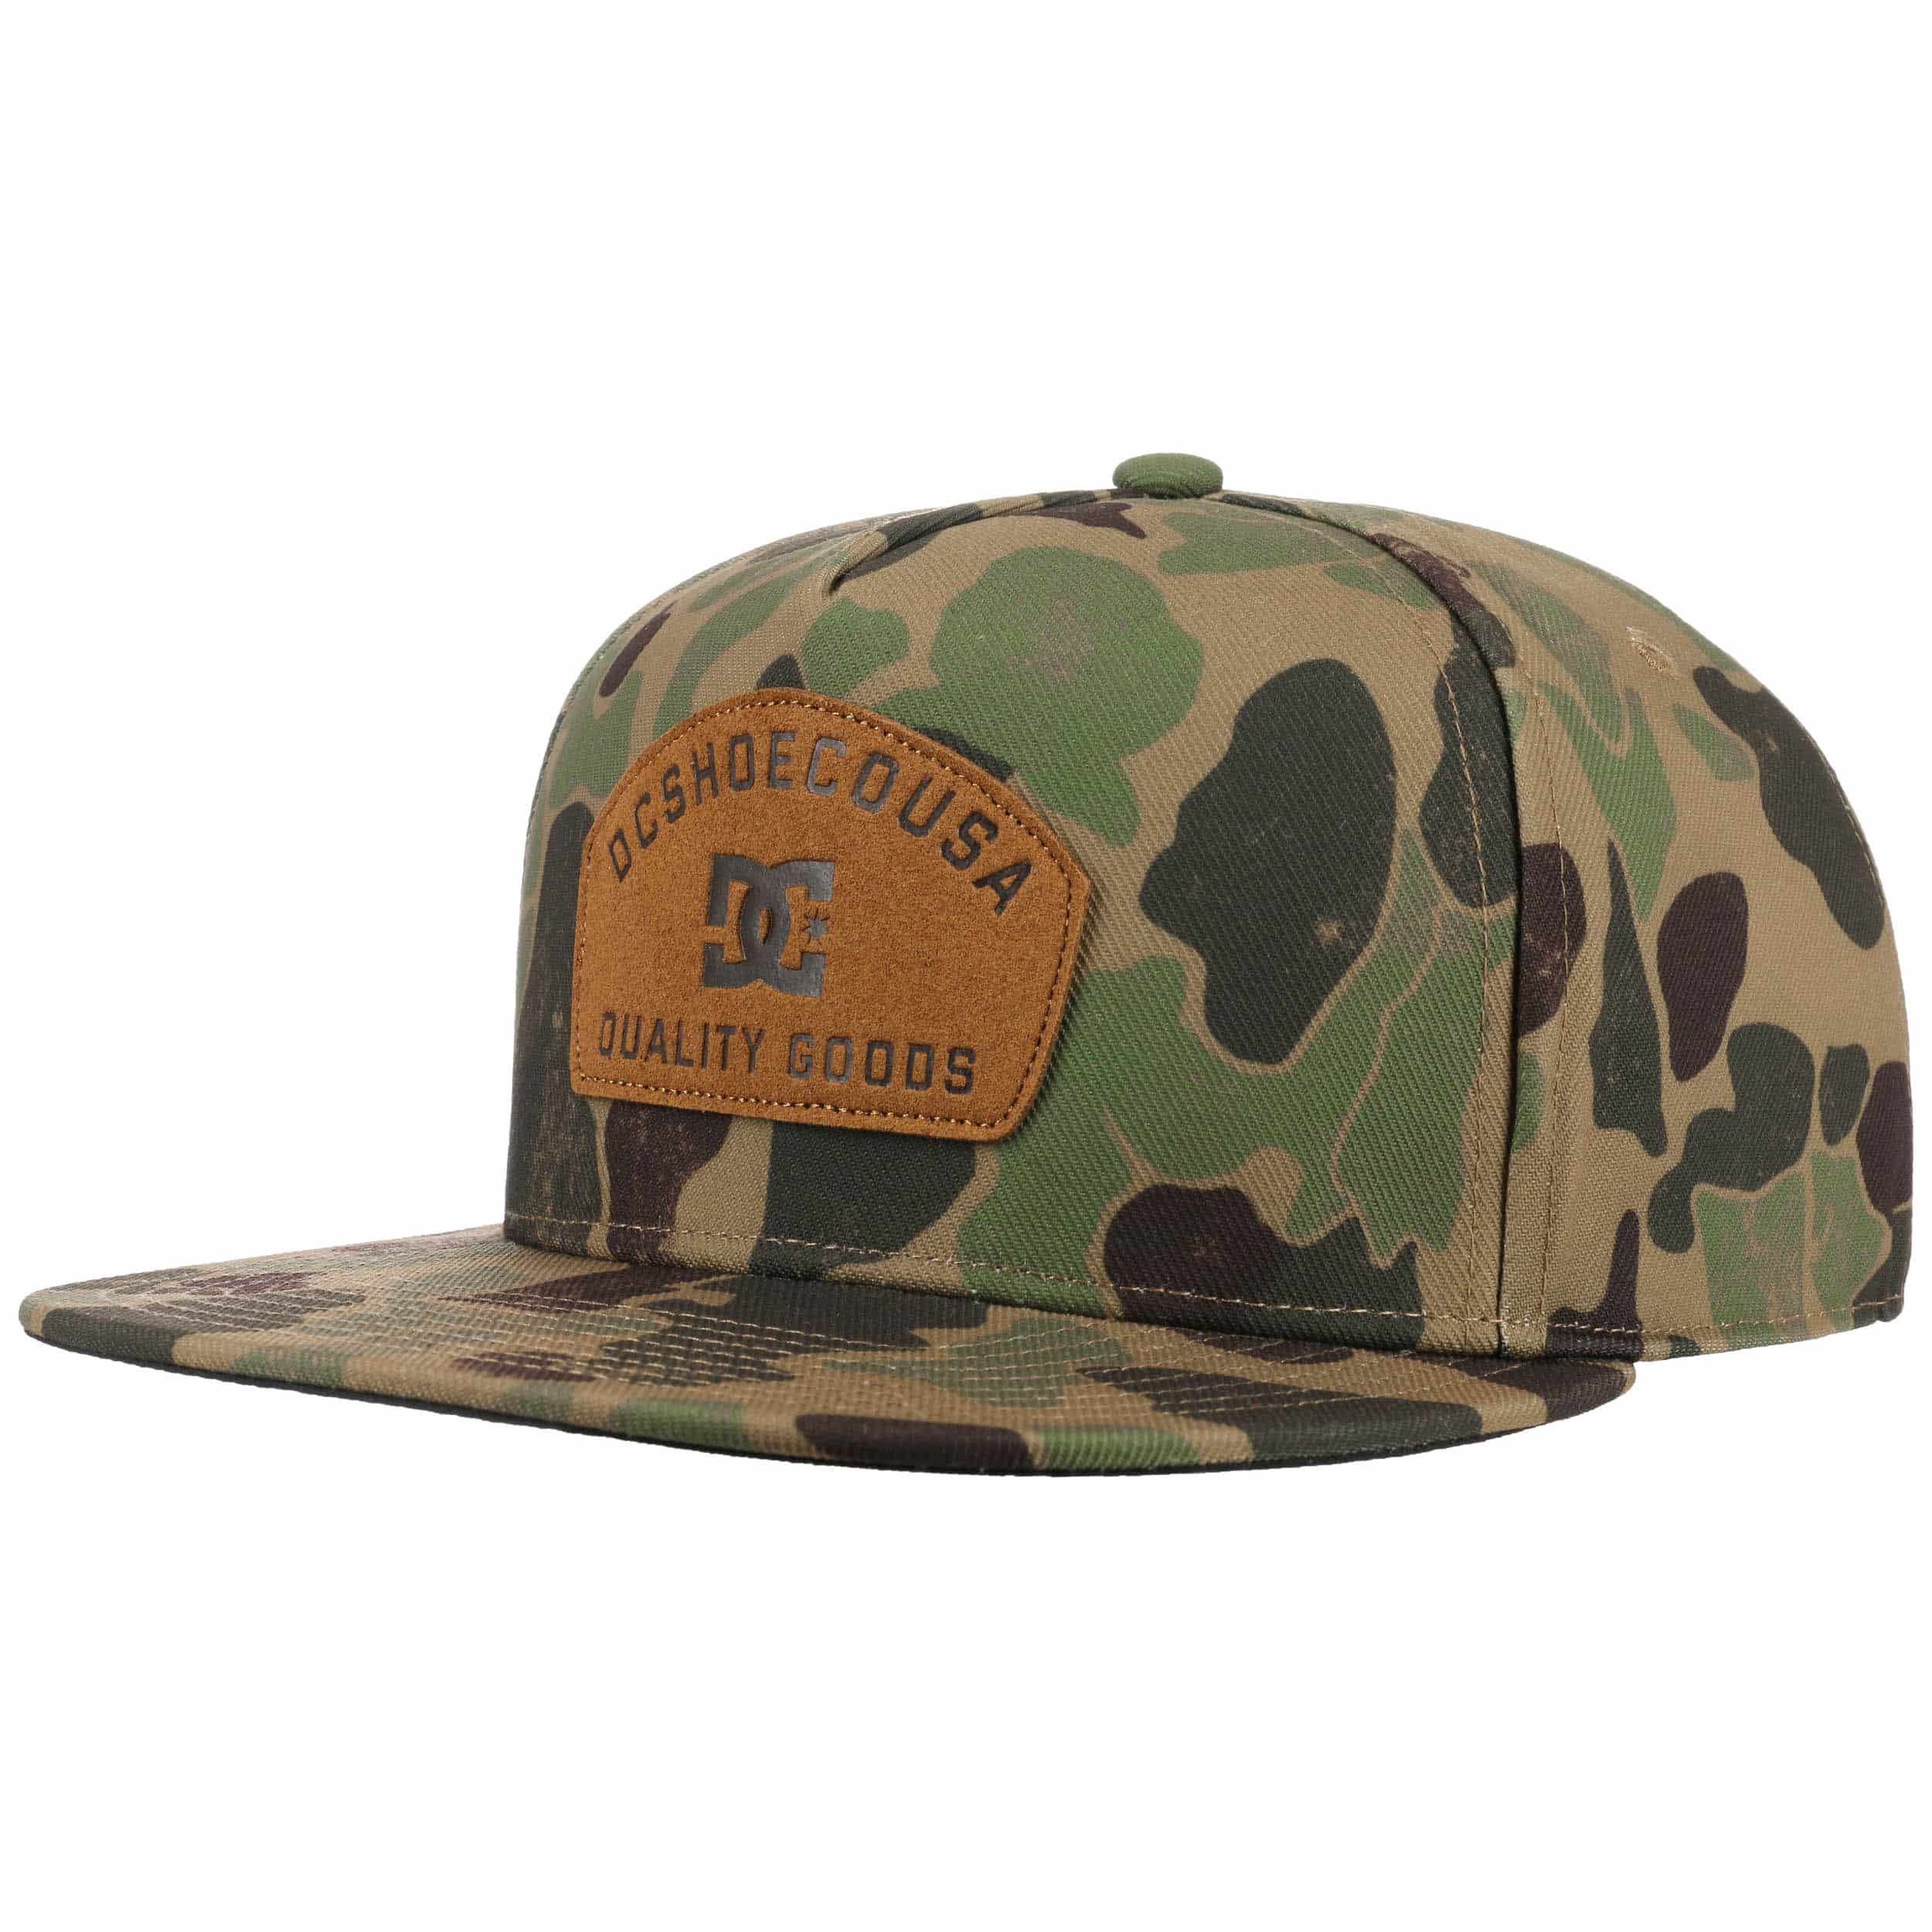 innovative design bdd63 a490a ... Betterman Snapback Cap by DC Shoes Co - camouflage 5